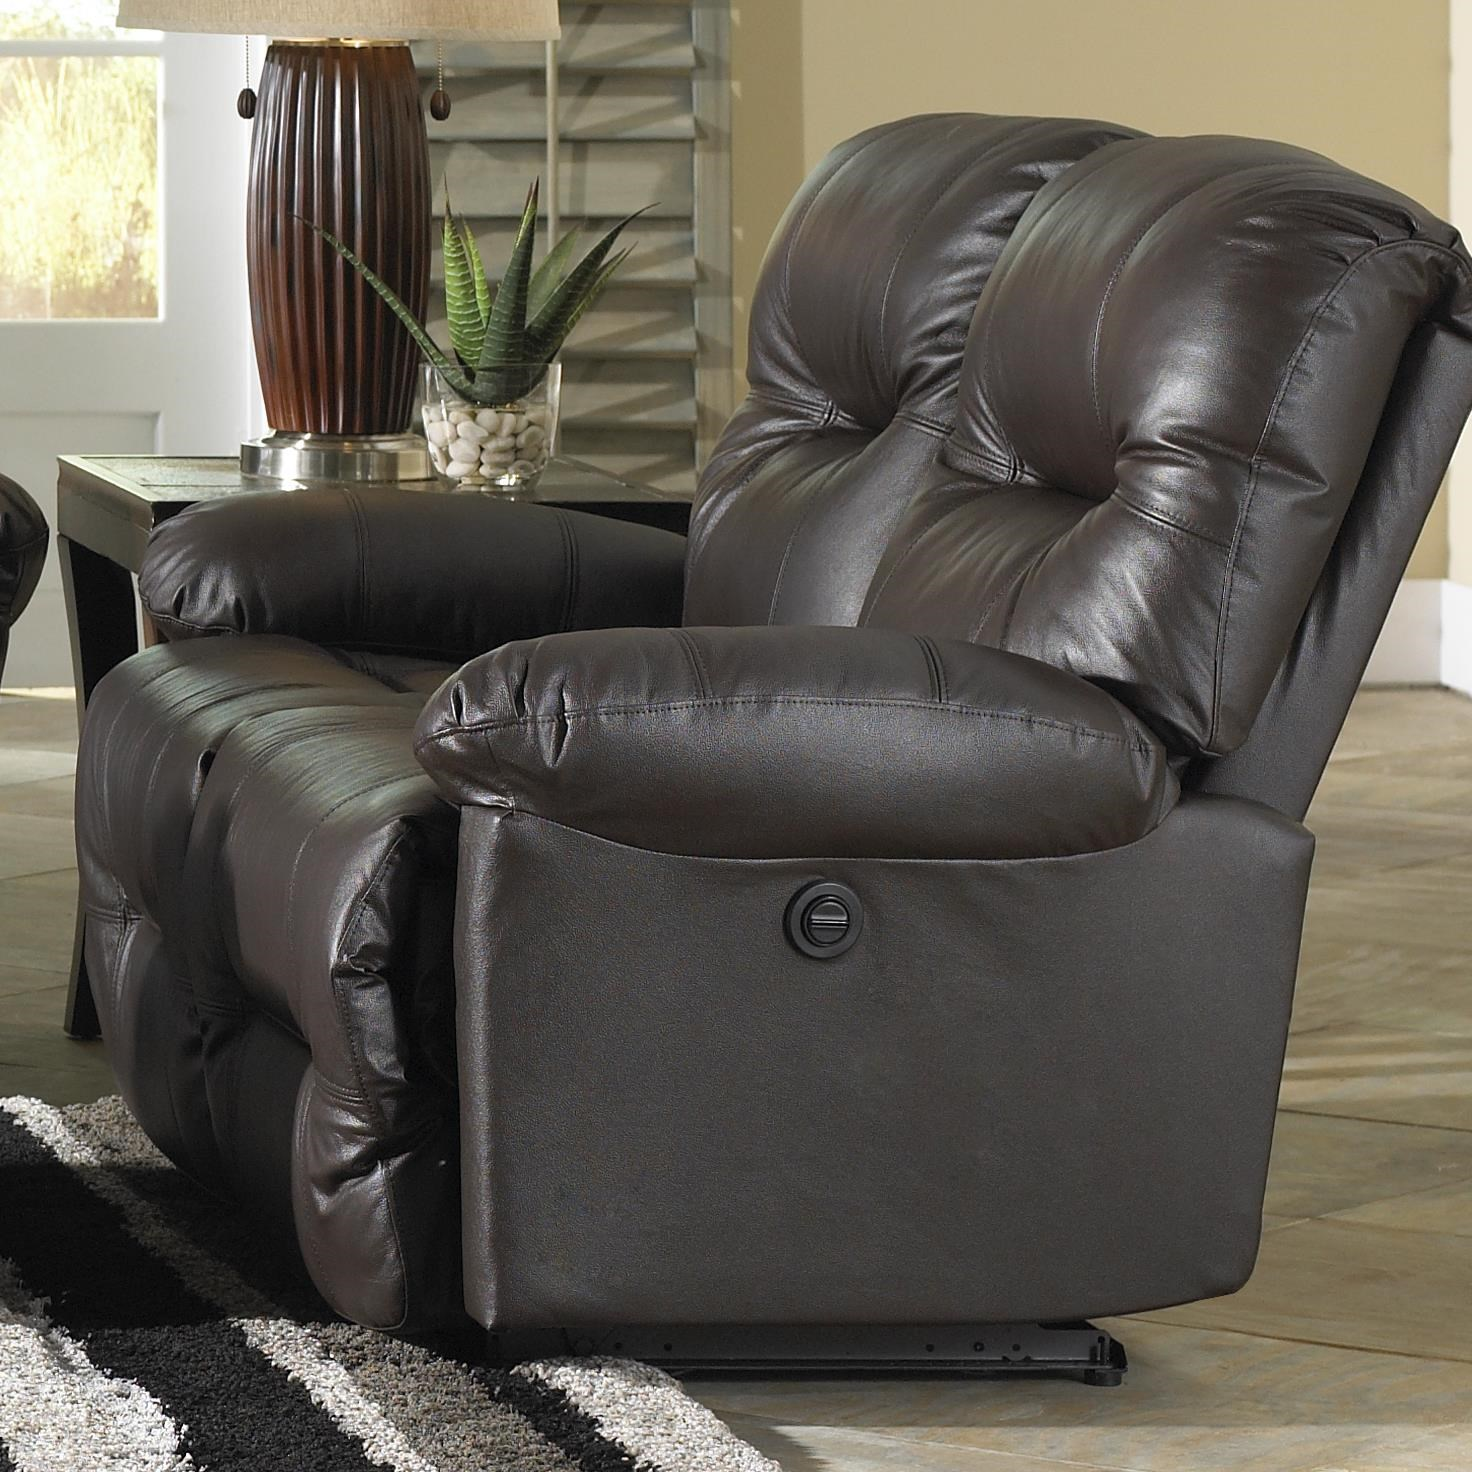 Best Home Furnishings S501 Zaynah Casual Reclining Loveseat with Pillow Arms - Great American Home Store - Reclining Love Seat  sc 1 st  Great American Home Store & Best Home Furnishings S501 Zaynah Casual Reclining Loveseat with ... islam-shia.org